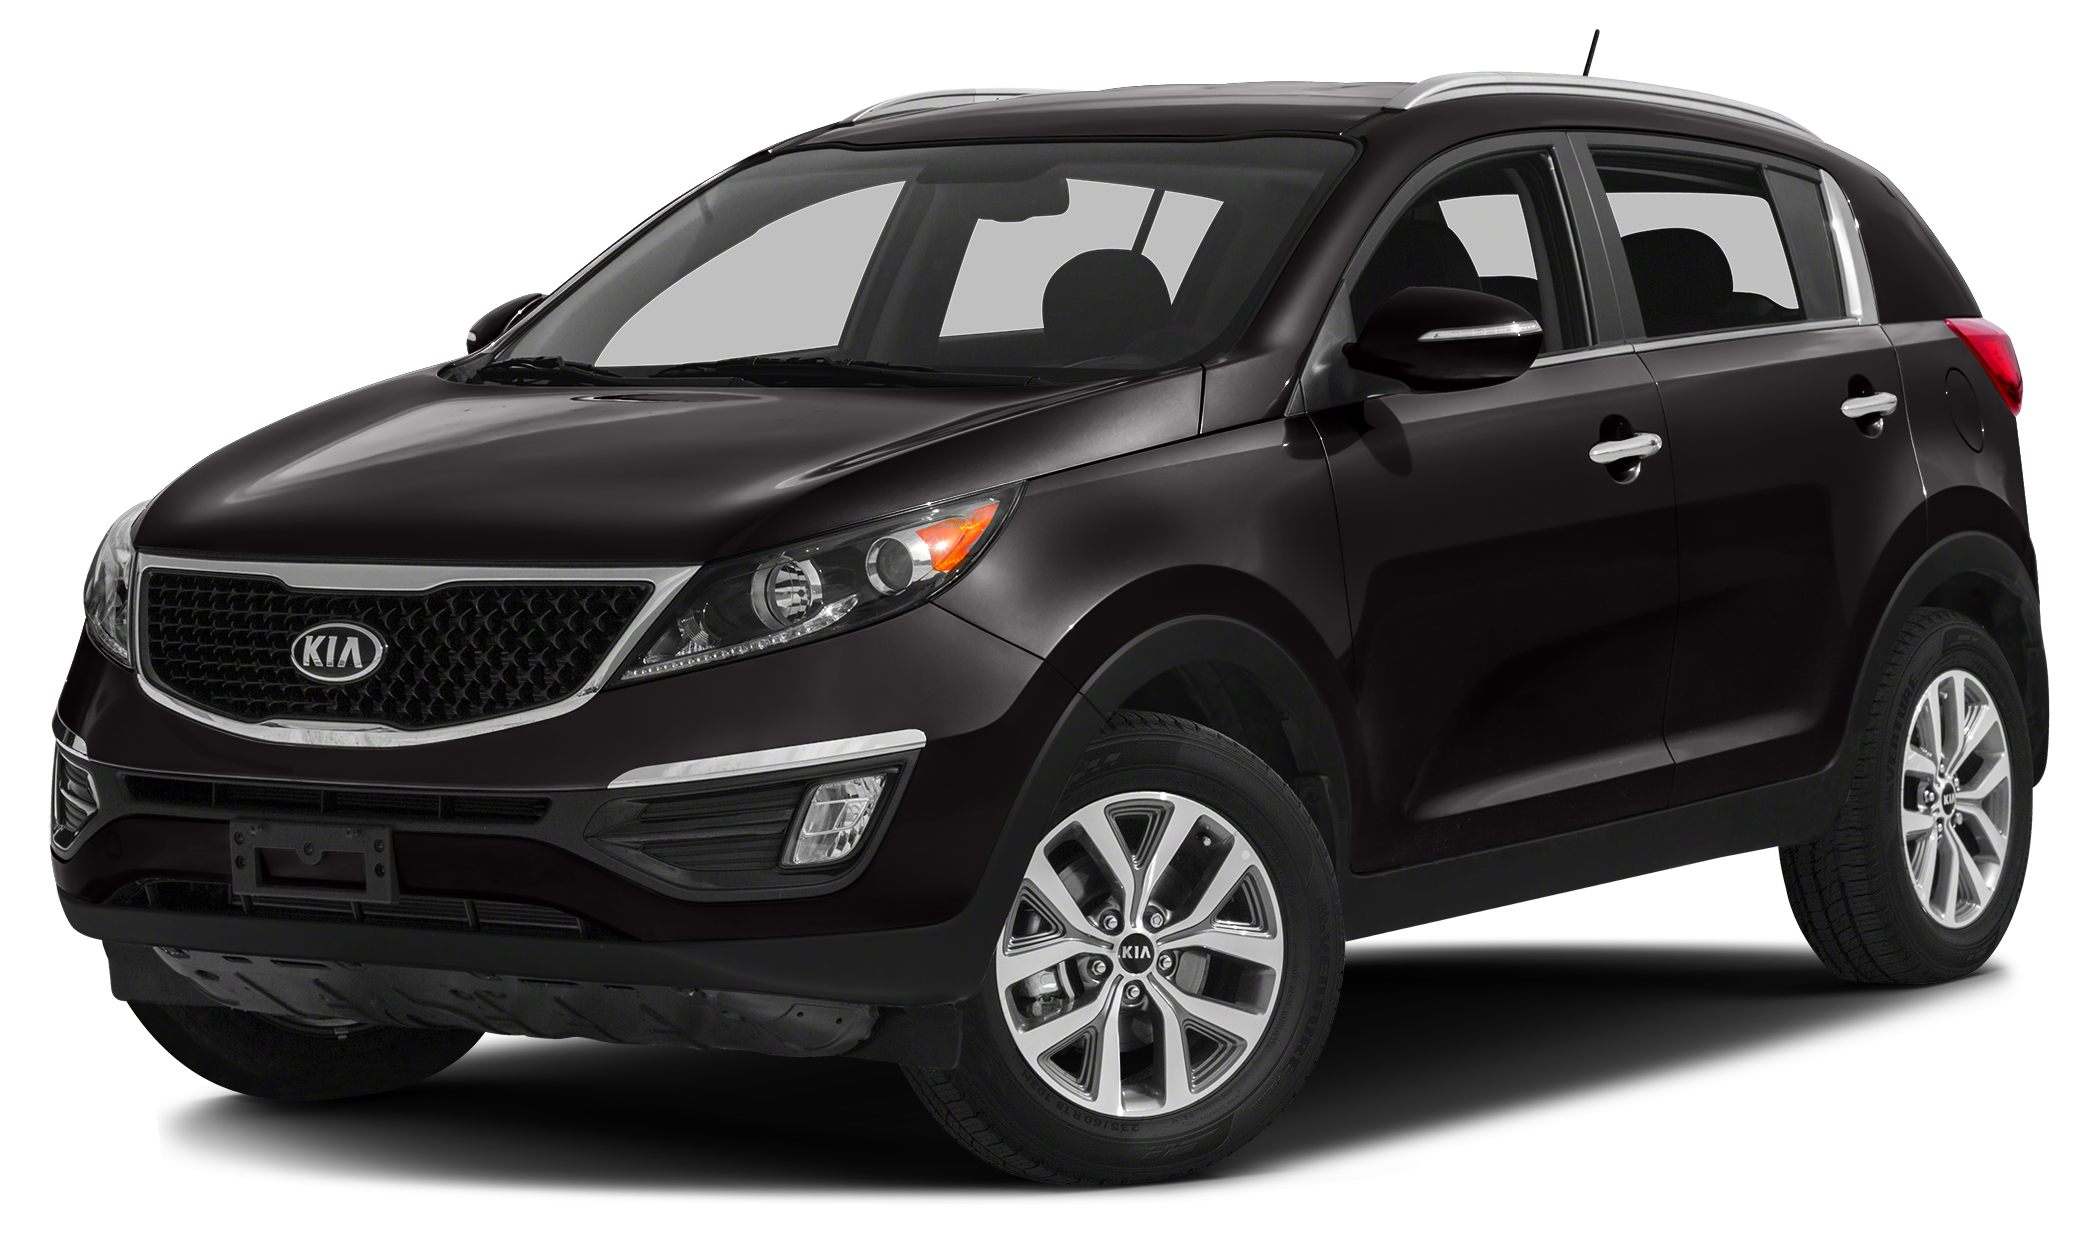 2016 Kia Sportage LX Good things come in perfectly sized packages including the 2016 Kia Sportage